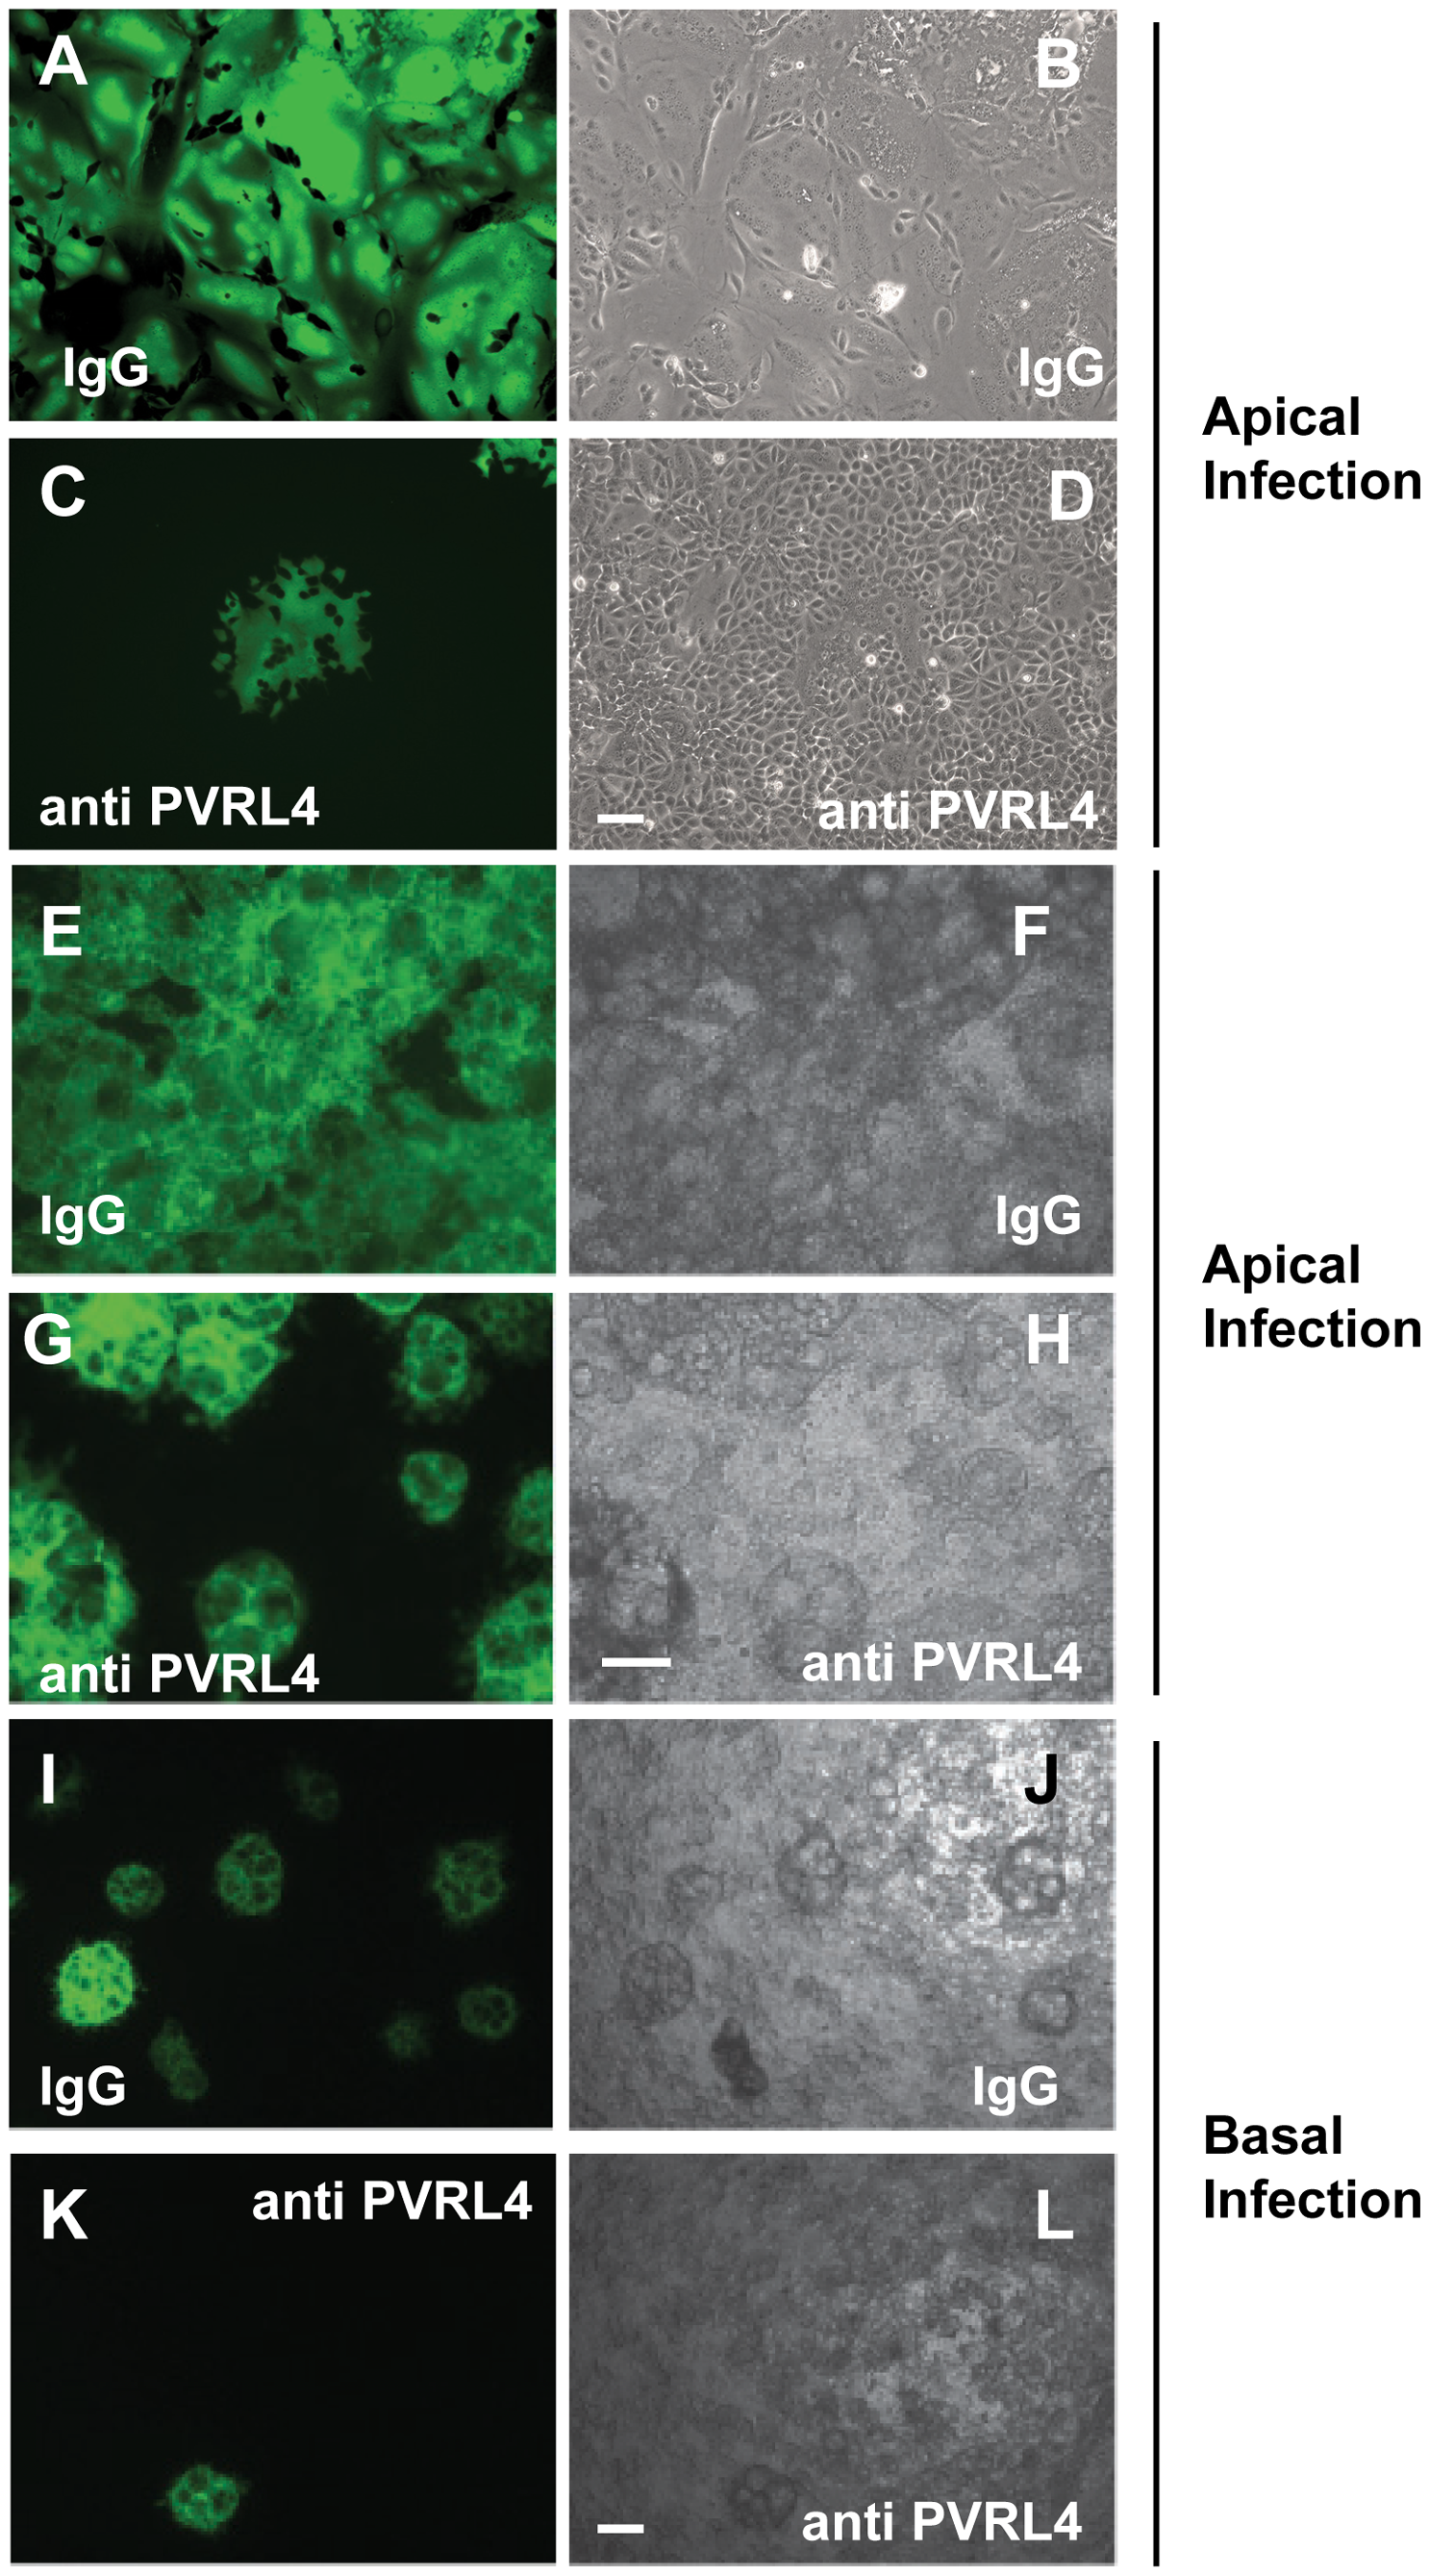 Antibodies specific for human PVRL4 inhibit wtMV infection in MCF7 cells.